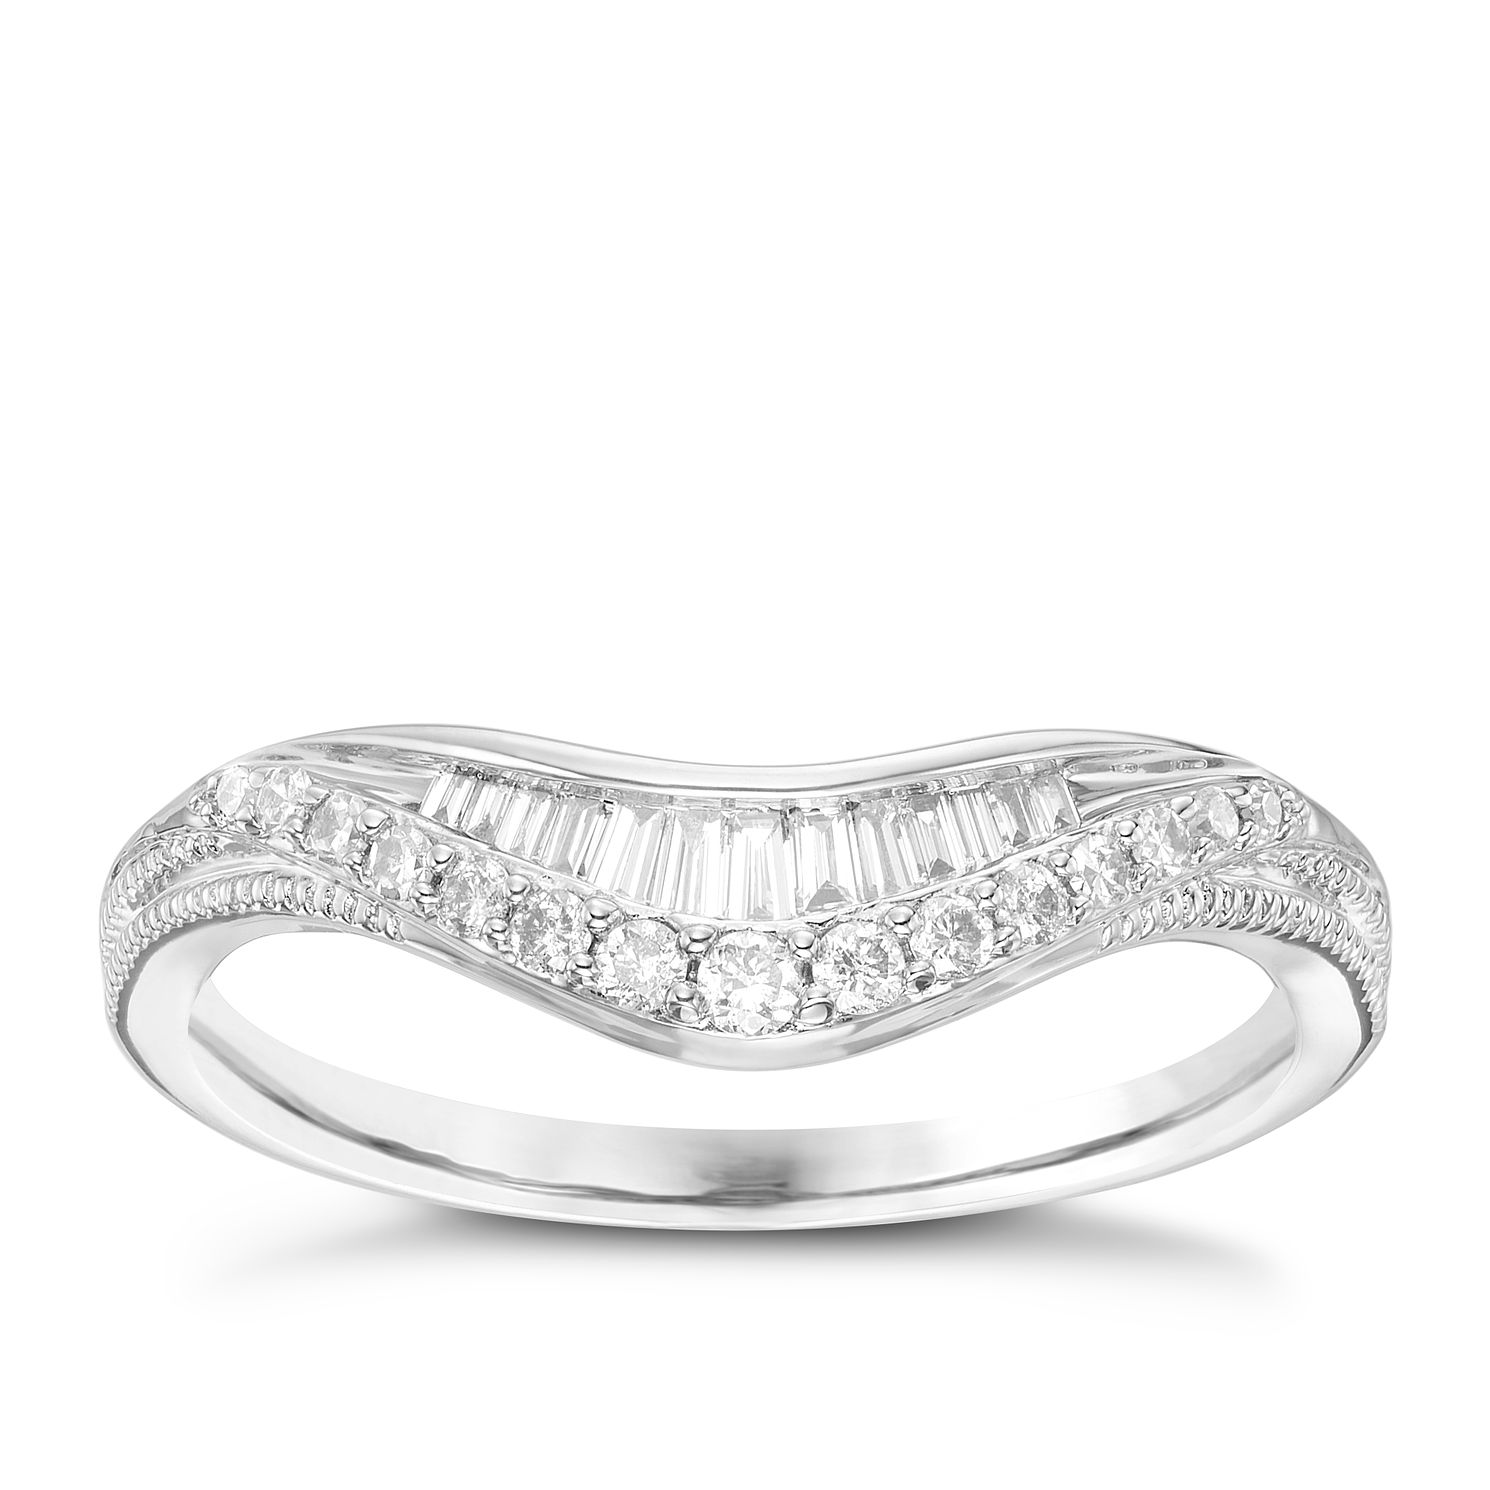 18ct White Gold 0.22 Carat Diamond Set Shaped Band - Product number 6090508